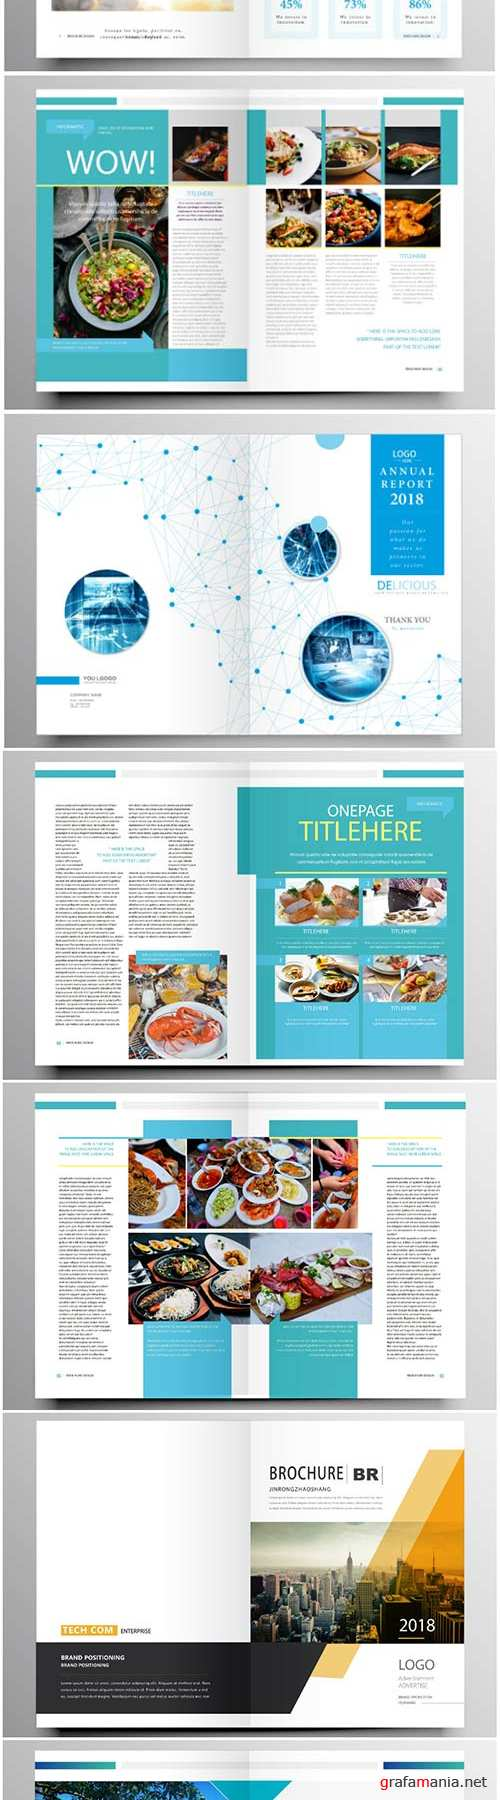 Brochure template vector layout design, corporate business annual report, magazine, flyer mockup # 201